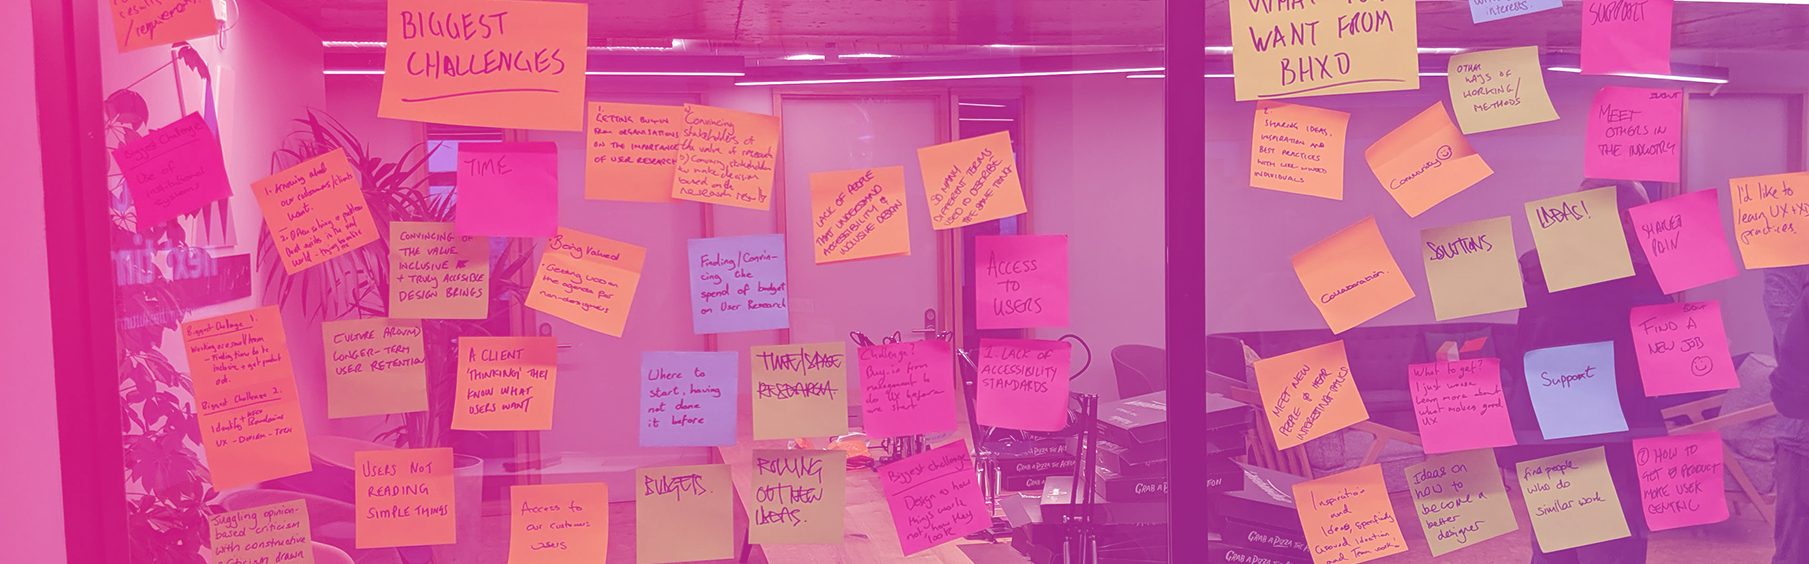 Photograph of post-its from the first BHXD event